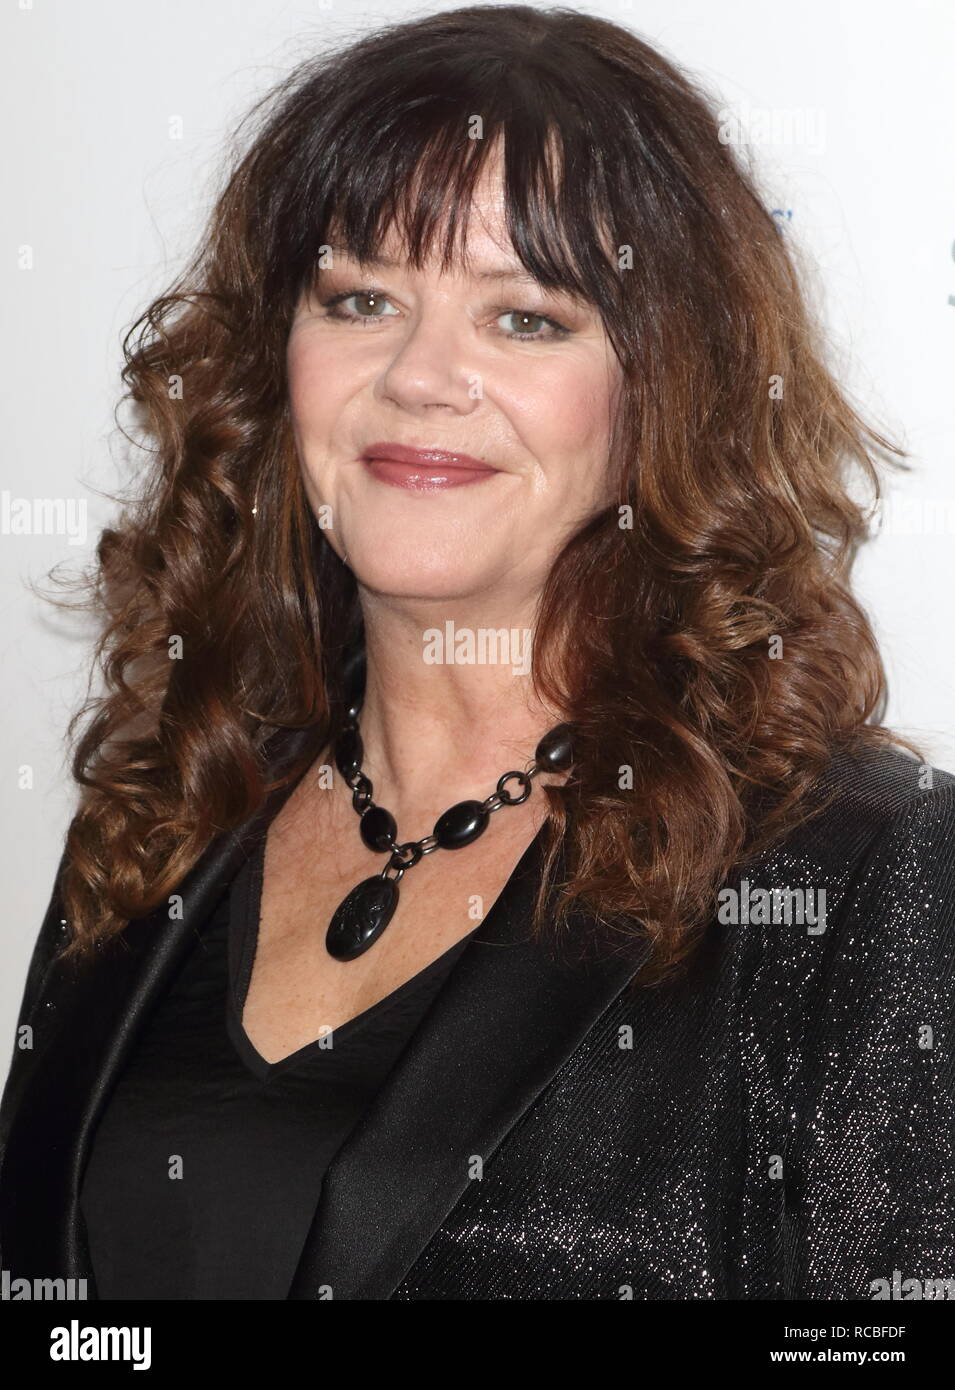 Josie Lawrence nudes (38 photo), Topless, Fappening, Instagram, butt 2017